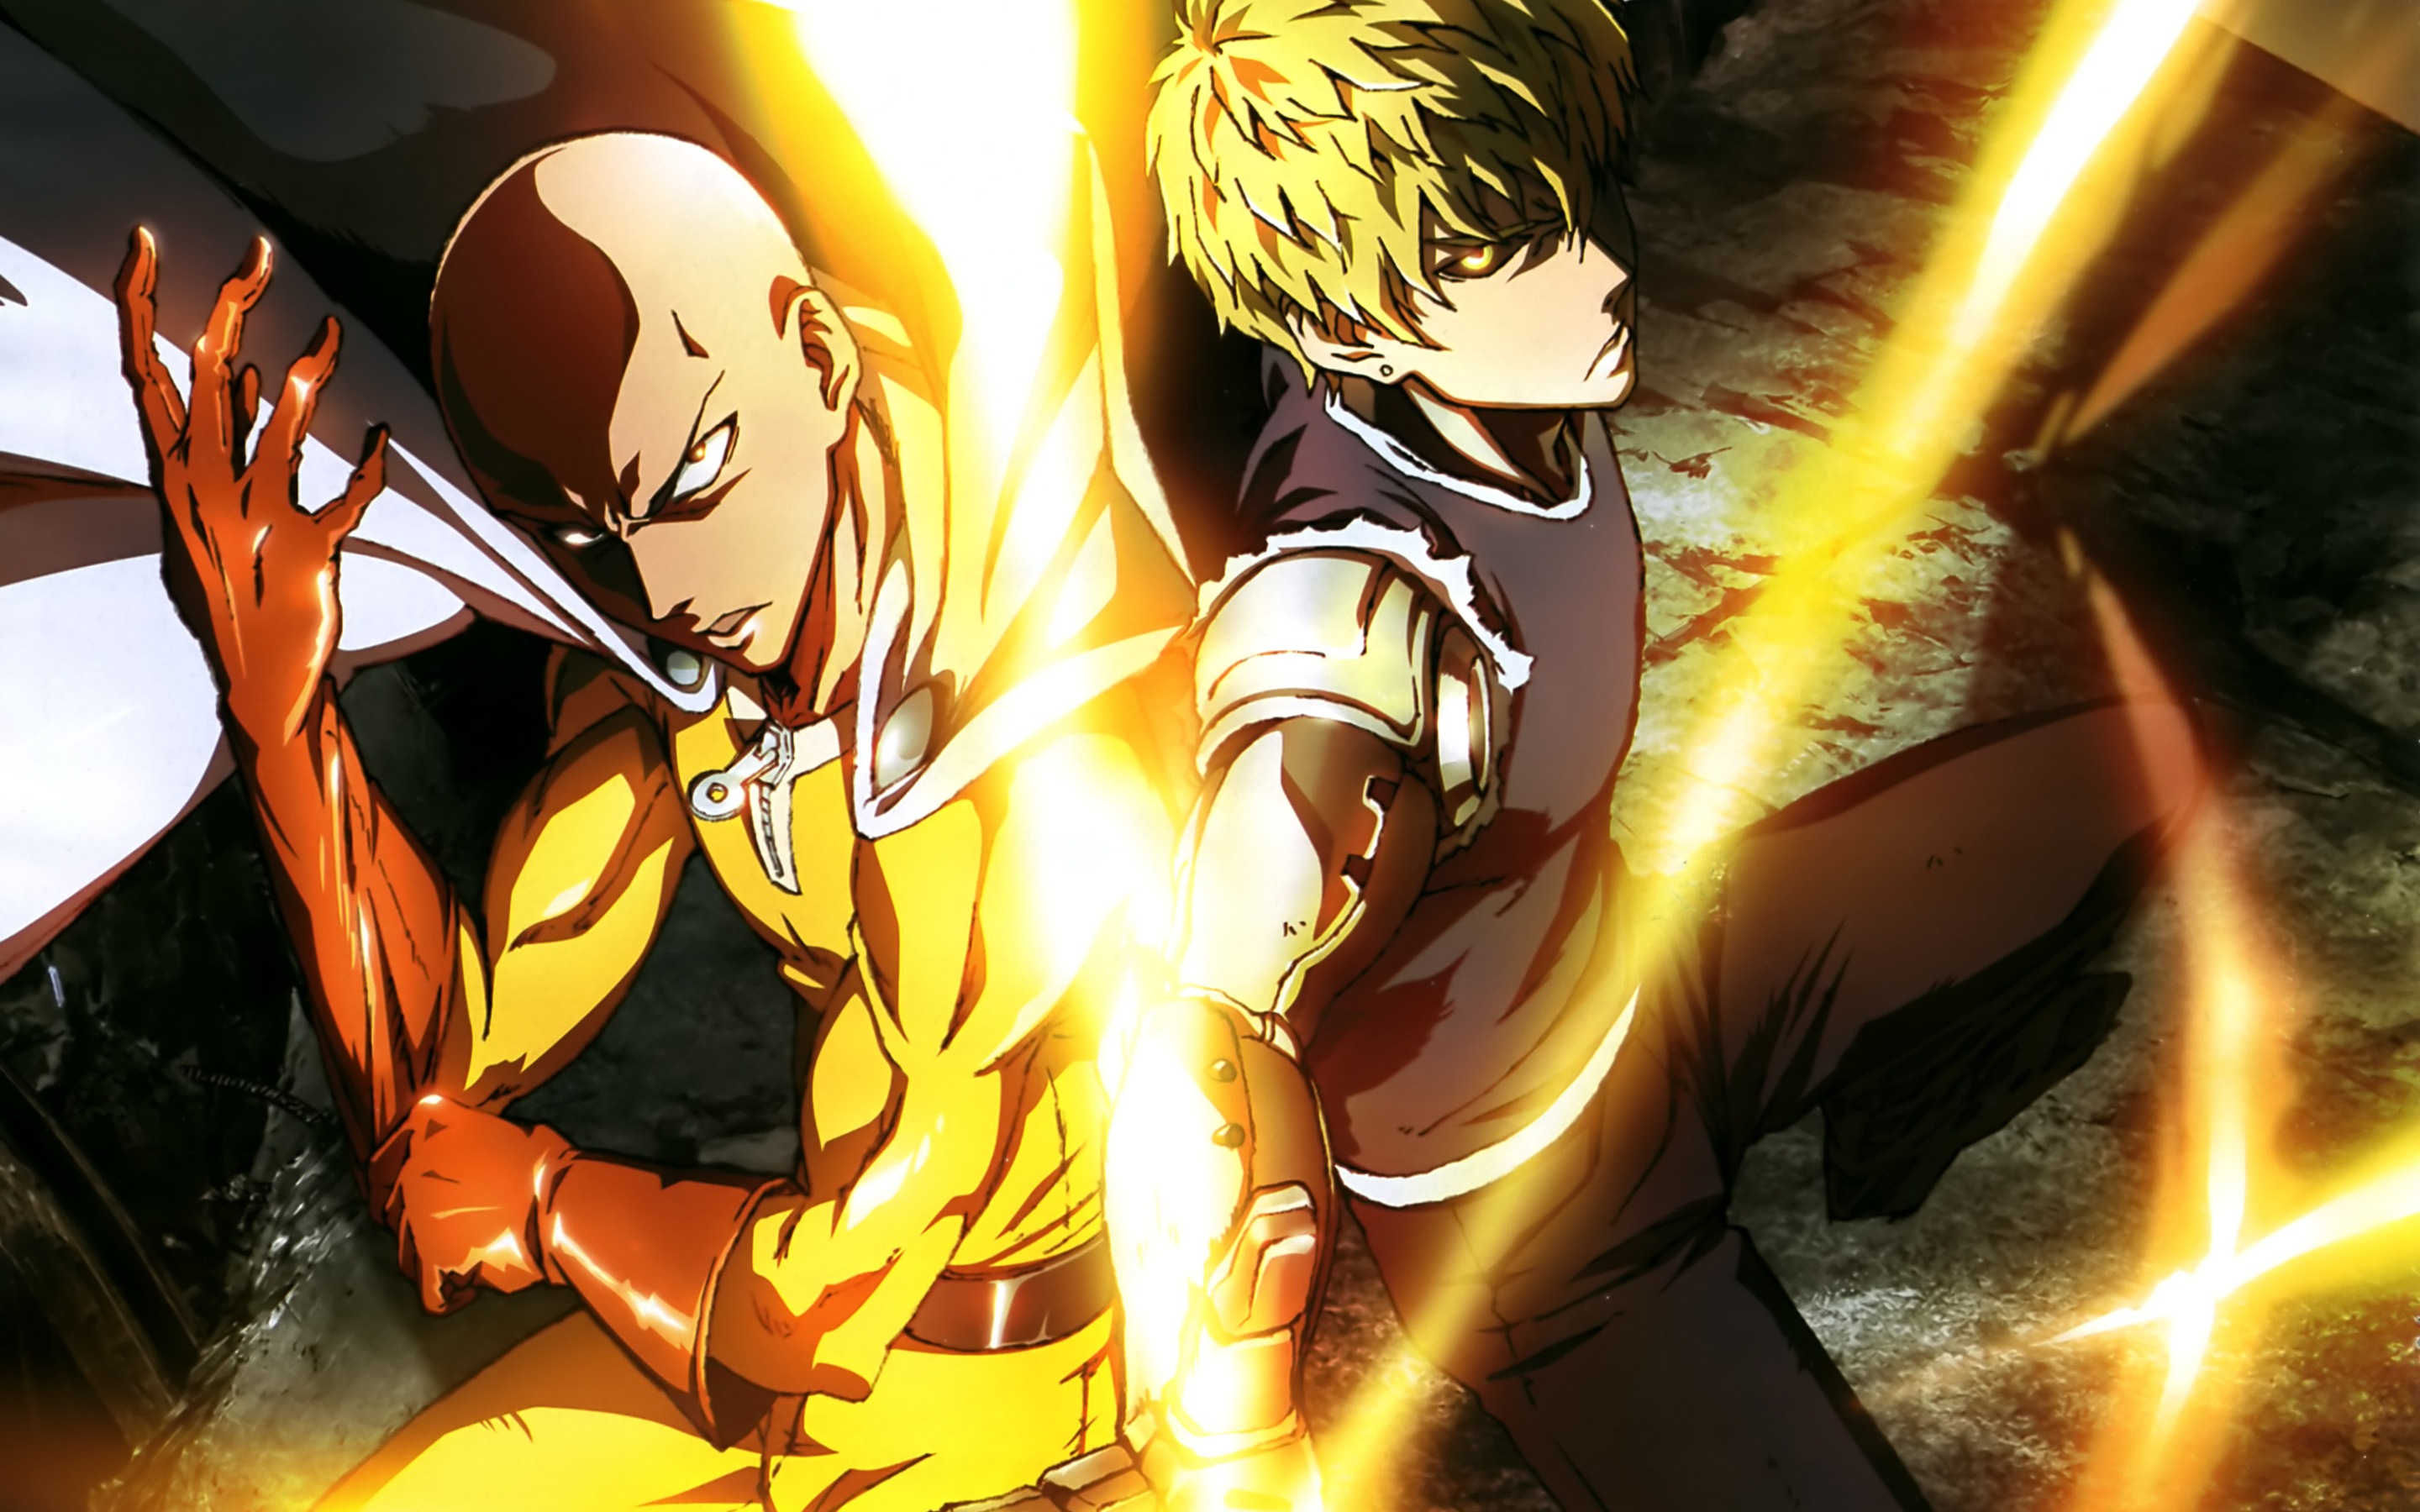 570 One Punch Man Hd Wallpapers Background Images Wallpaper Abyss